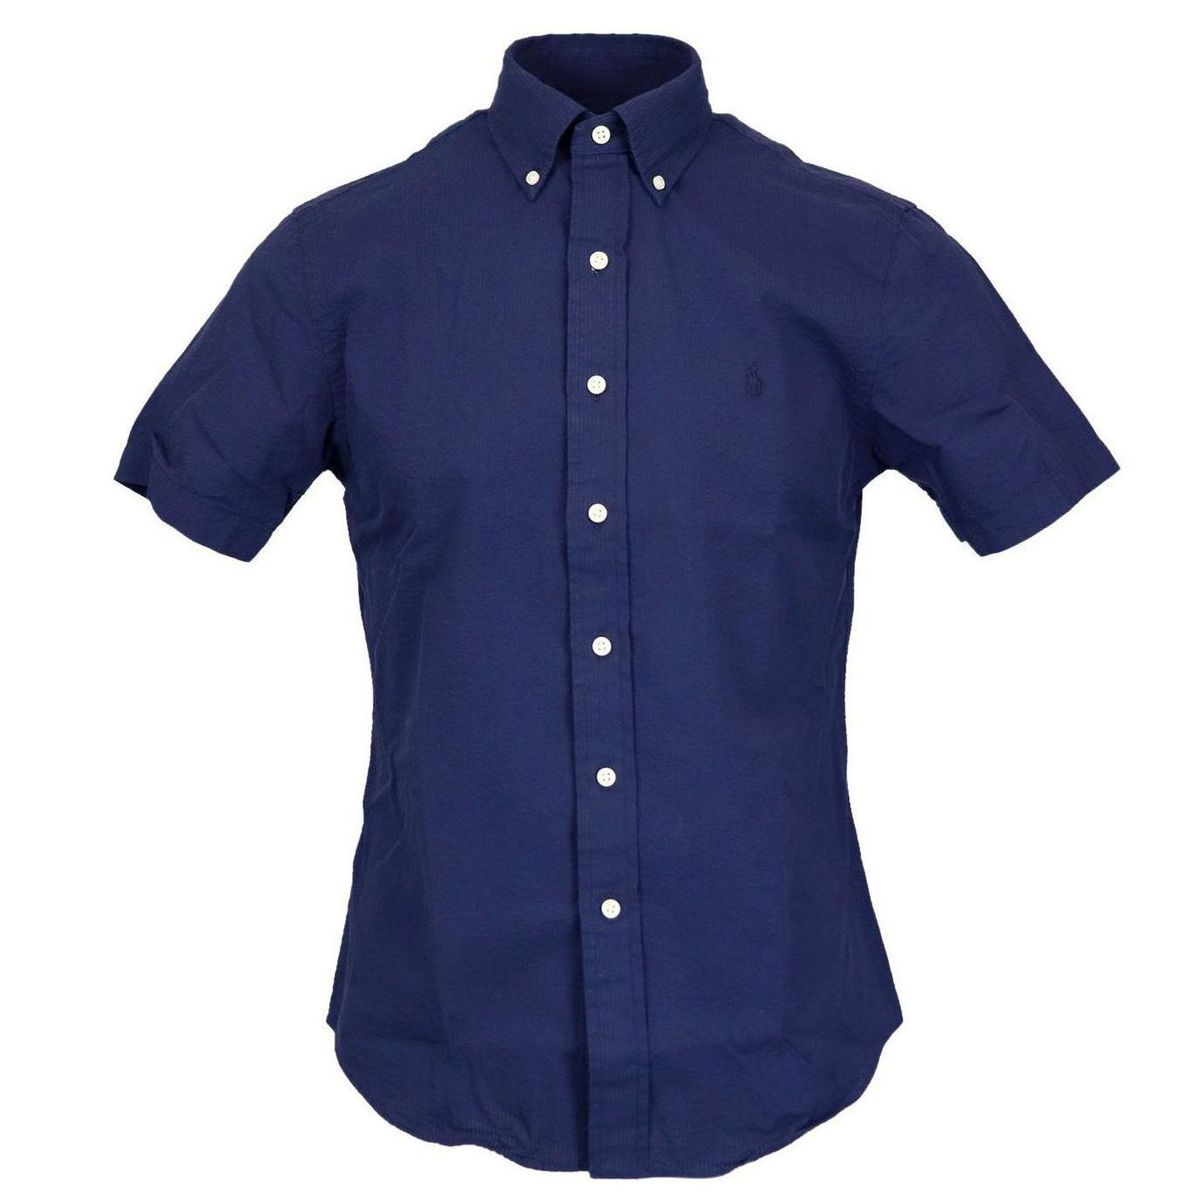 Custom-fit button-down cotton shirt Navy Polo Ralph Lauren